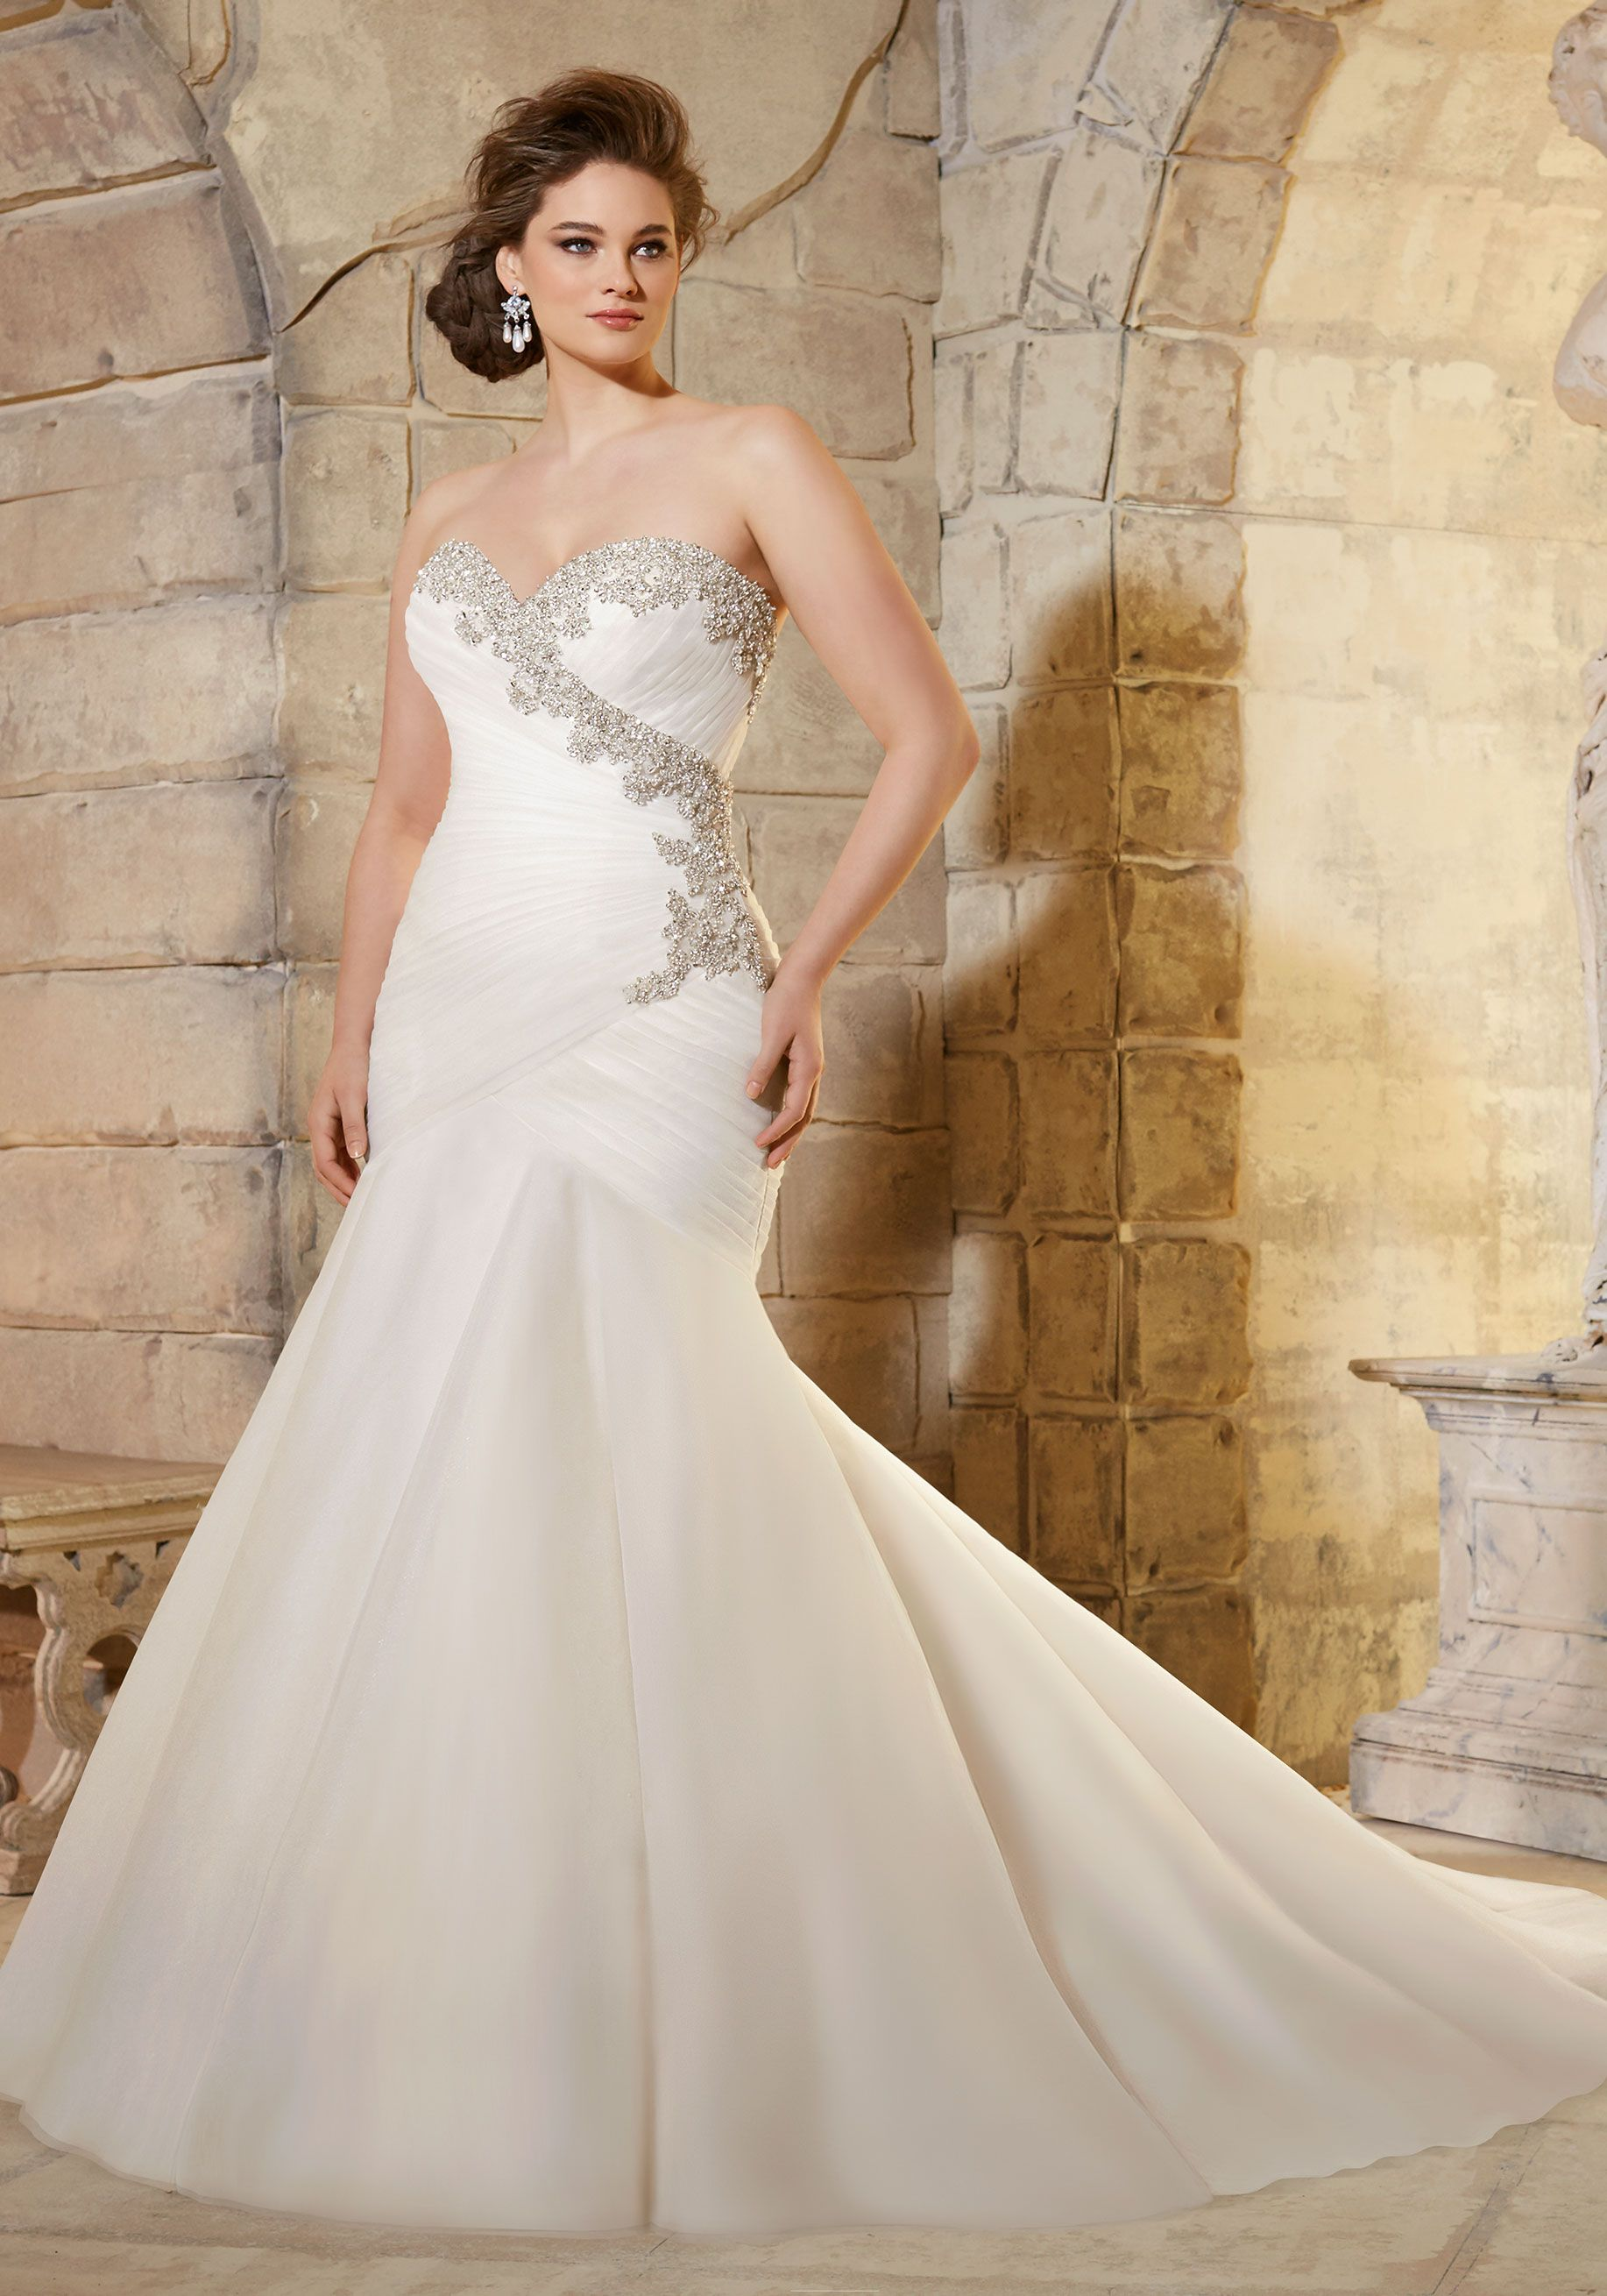 Simple Crystal Beaded Embroidery on Asymmetrically Draped Soft Net Plus Size Wedding Dress Designed by